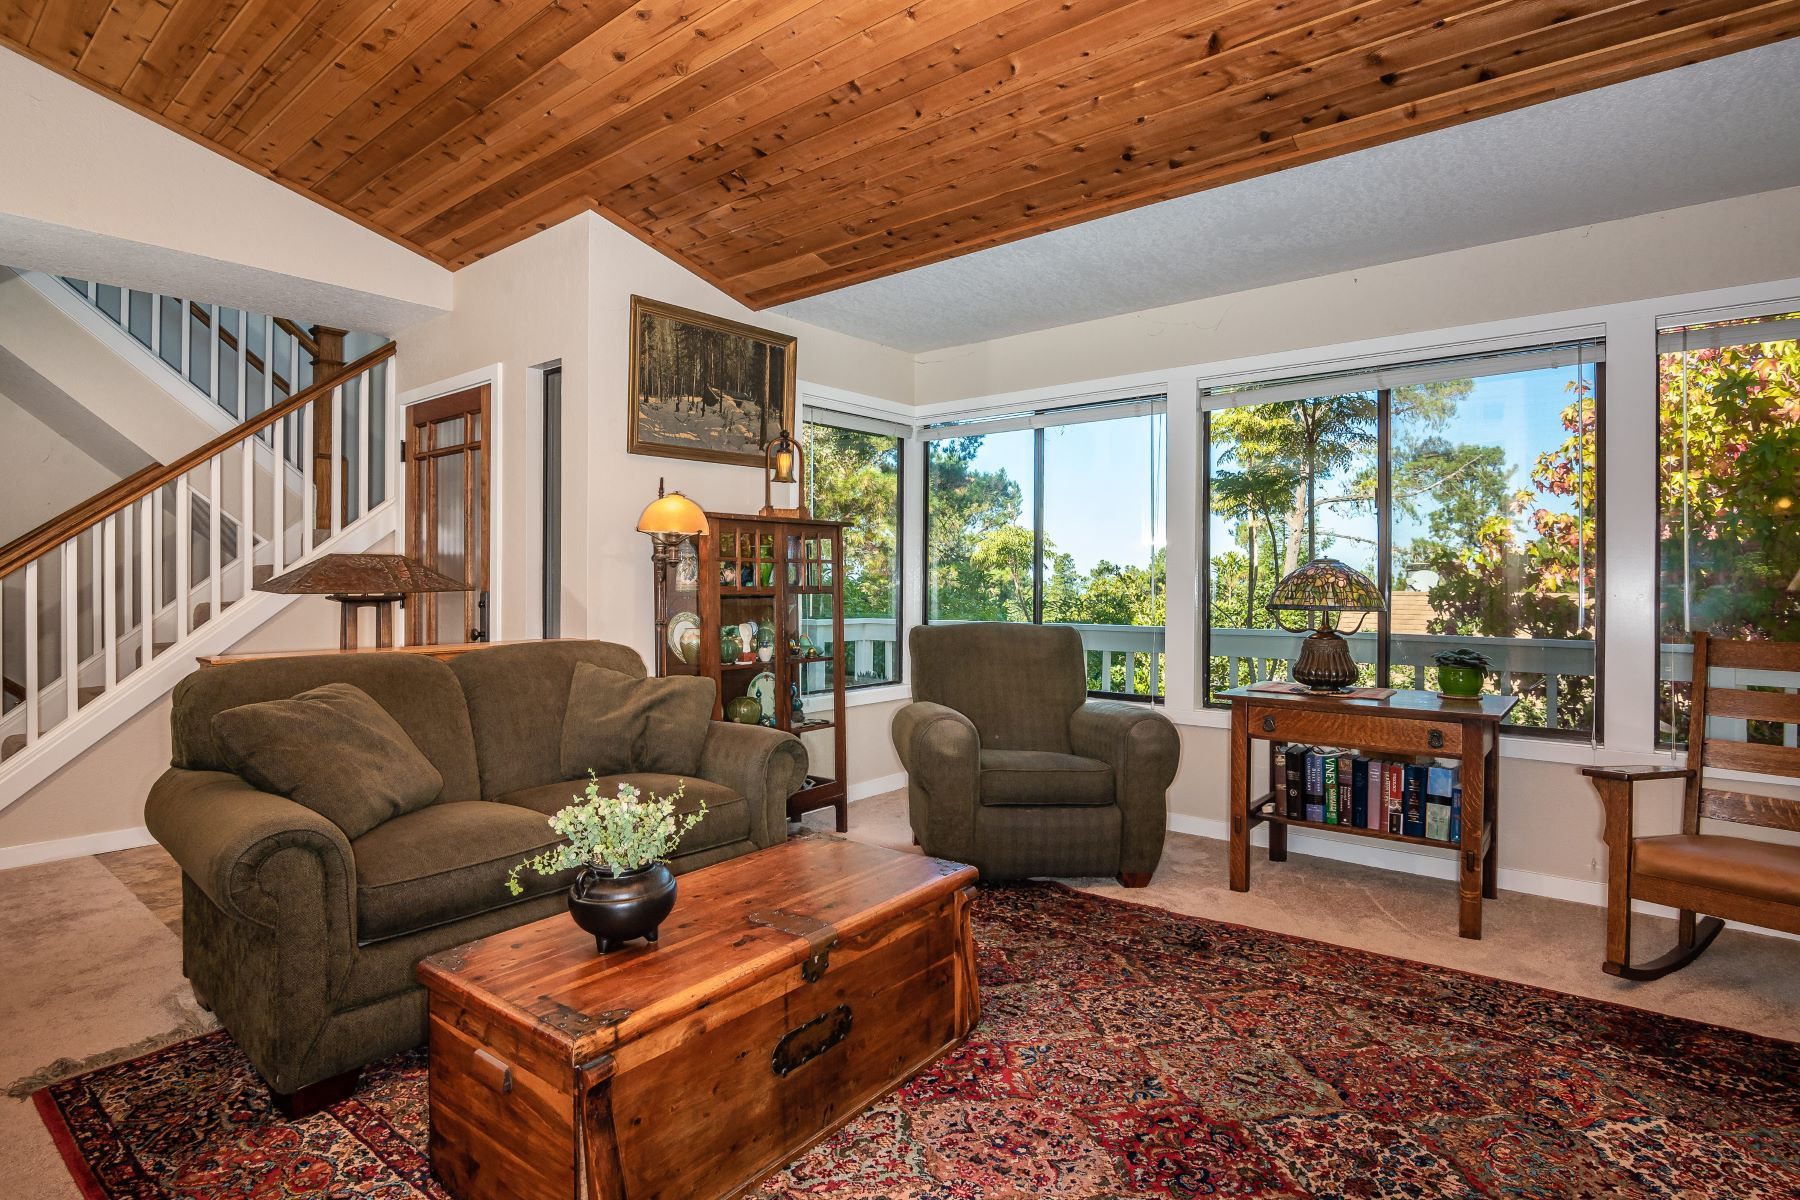 Single Family Homes for Sale at Craftsman Charm With Views 1625 Norwich Cambria, California 93428 United States